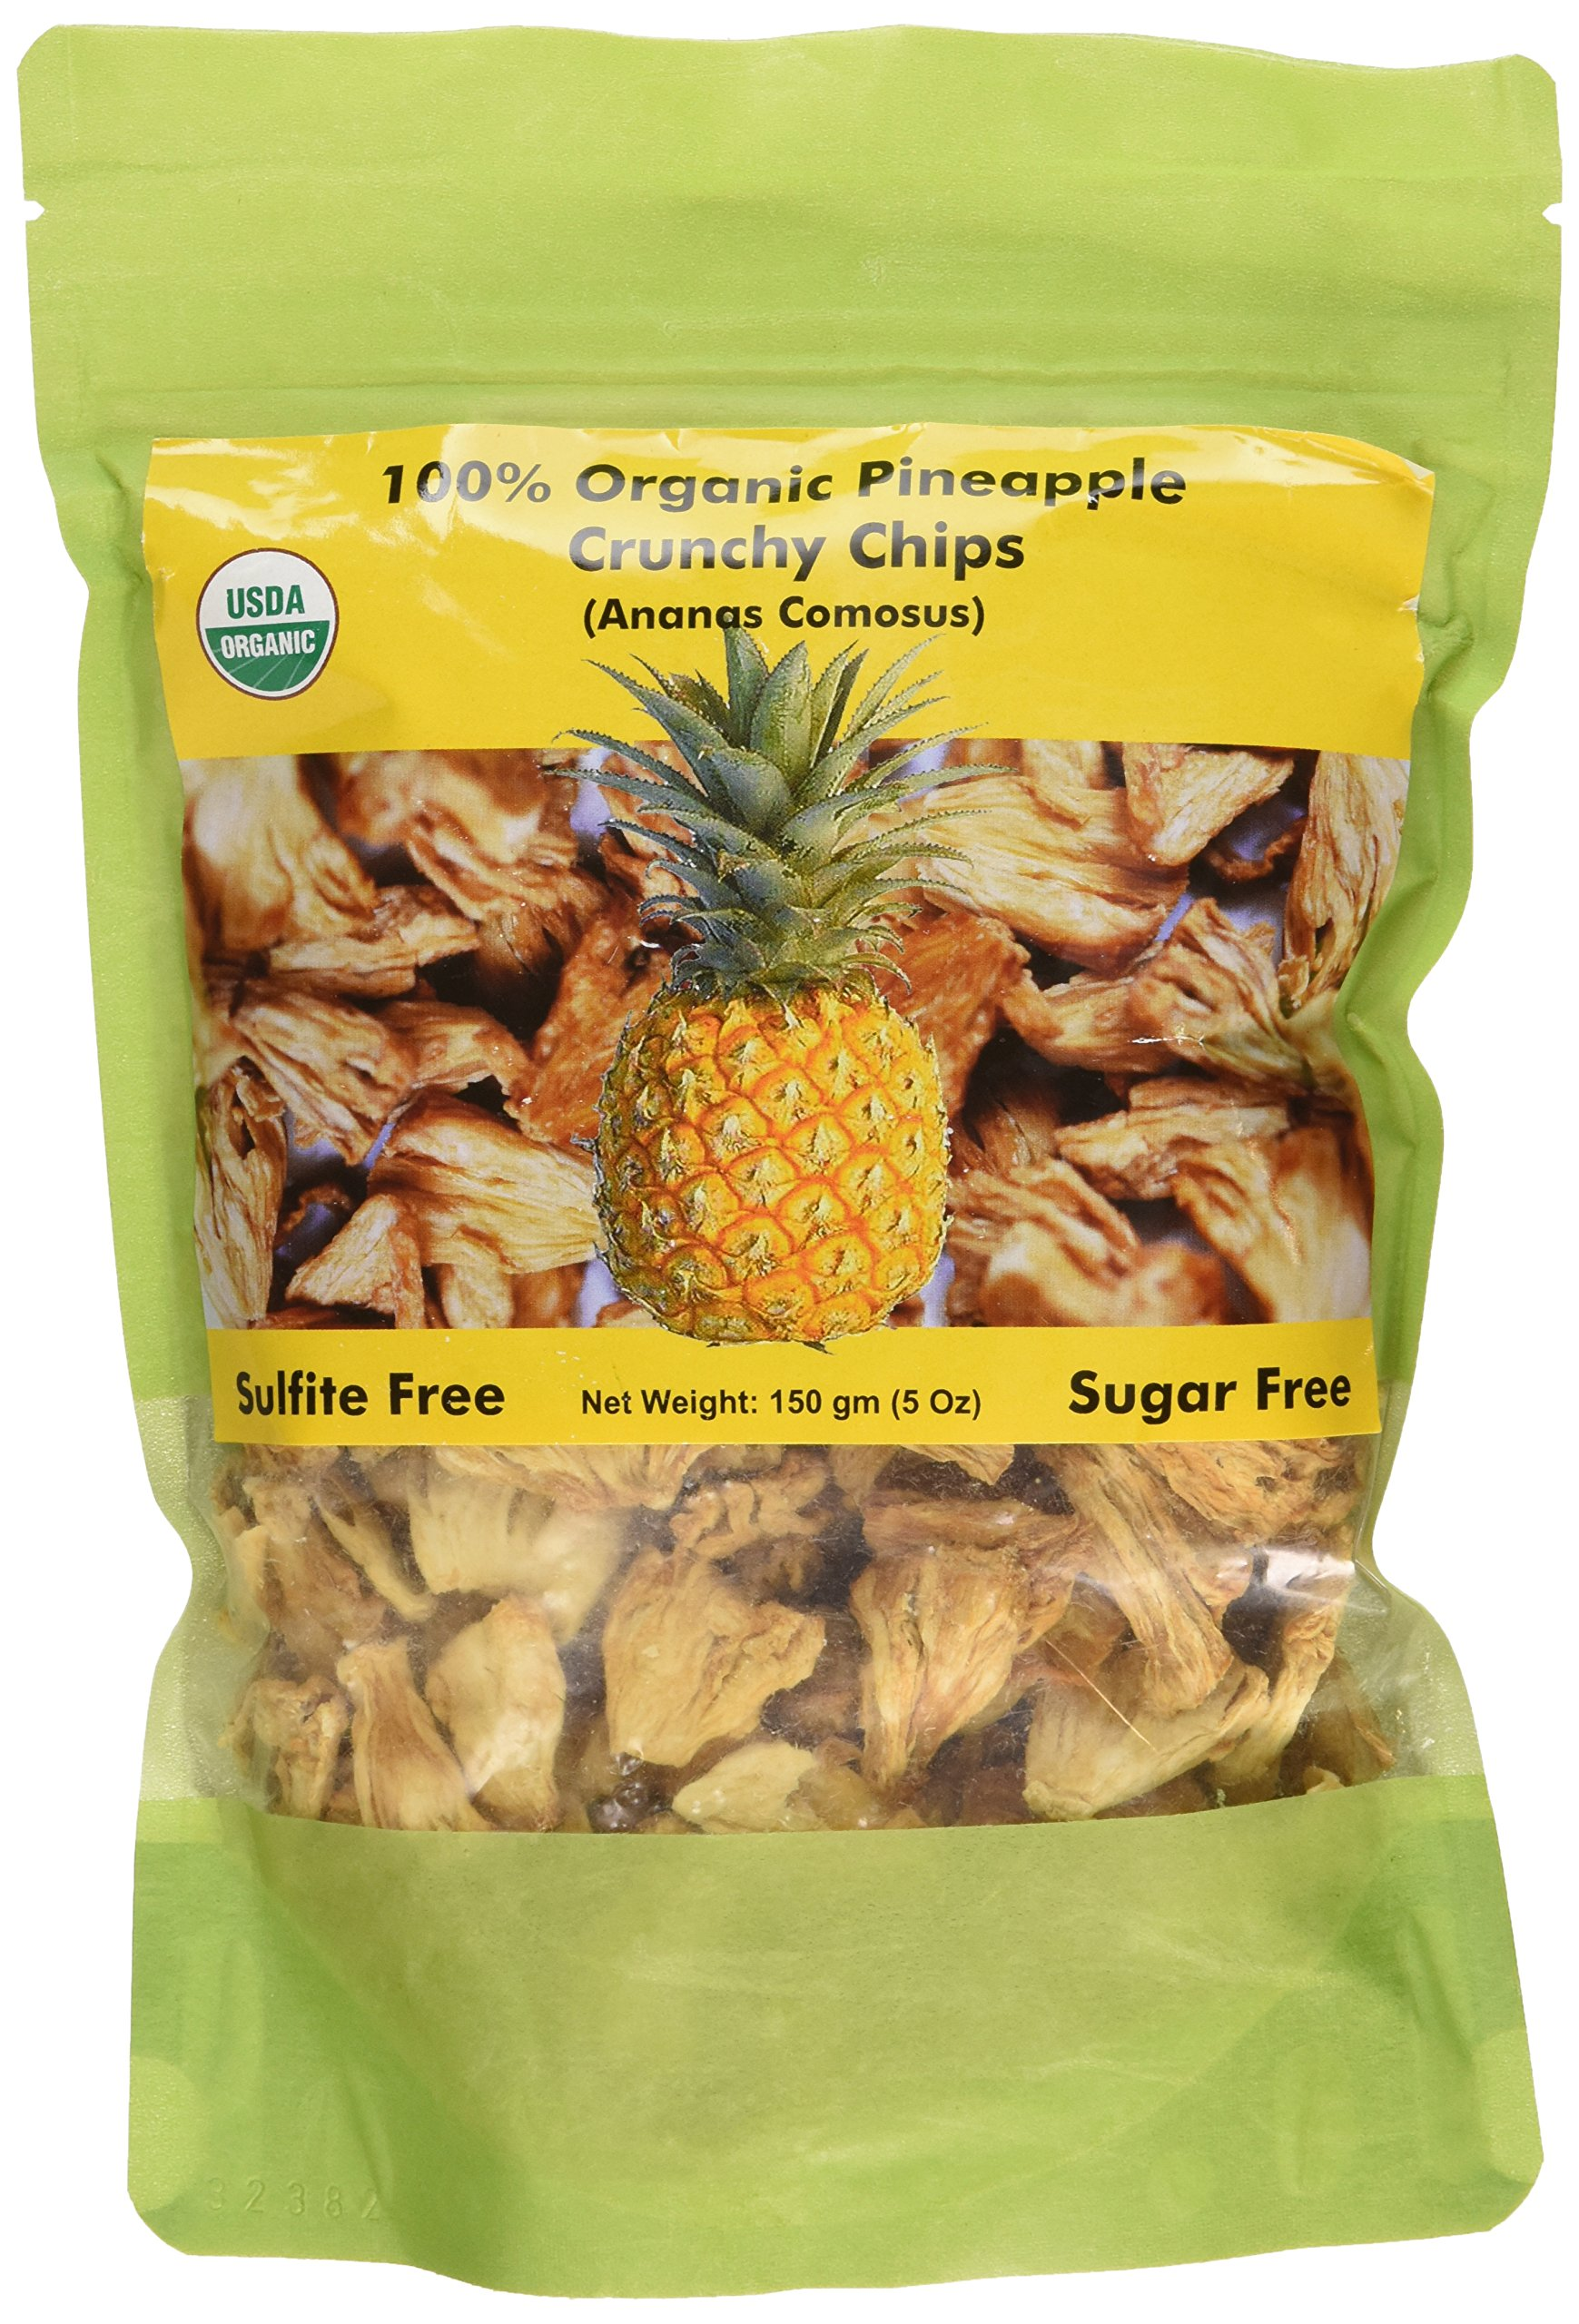 Indus Organics Pineapple Dried Crunchy Chips, 5 Oz (X3 of Bags), Sulfite Free, No Added Sugar, Freshly Packed